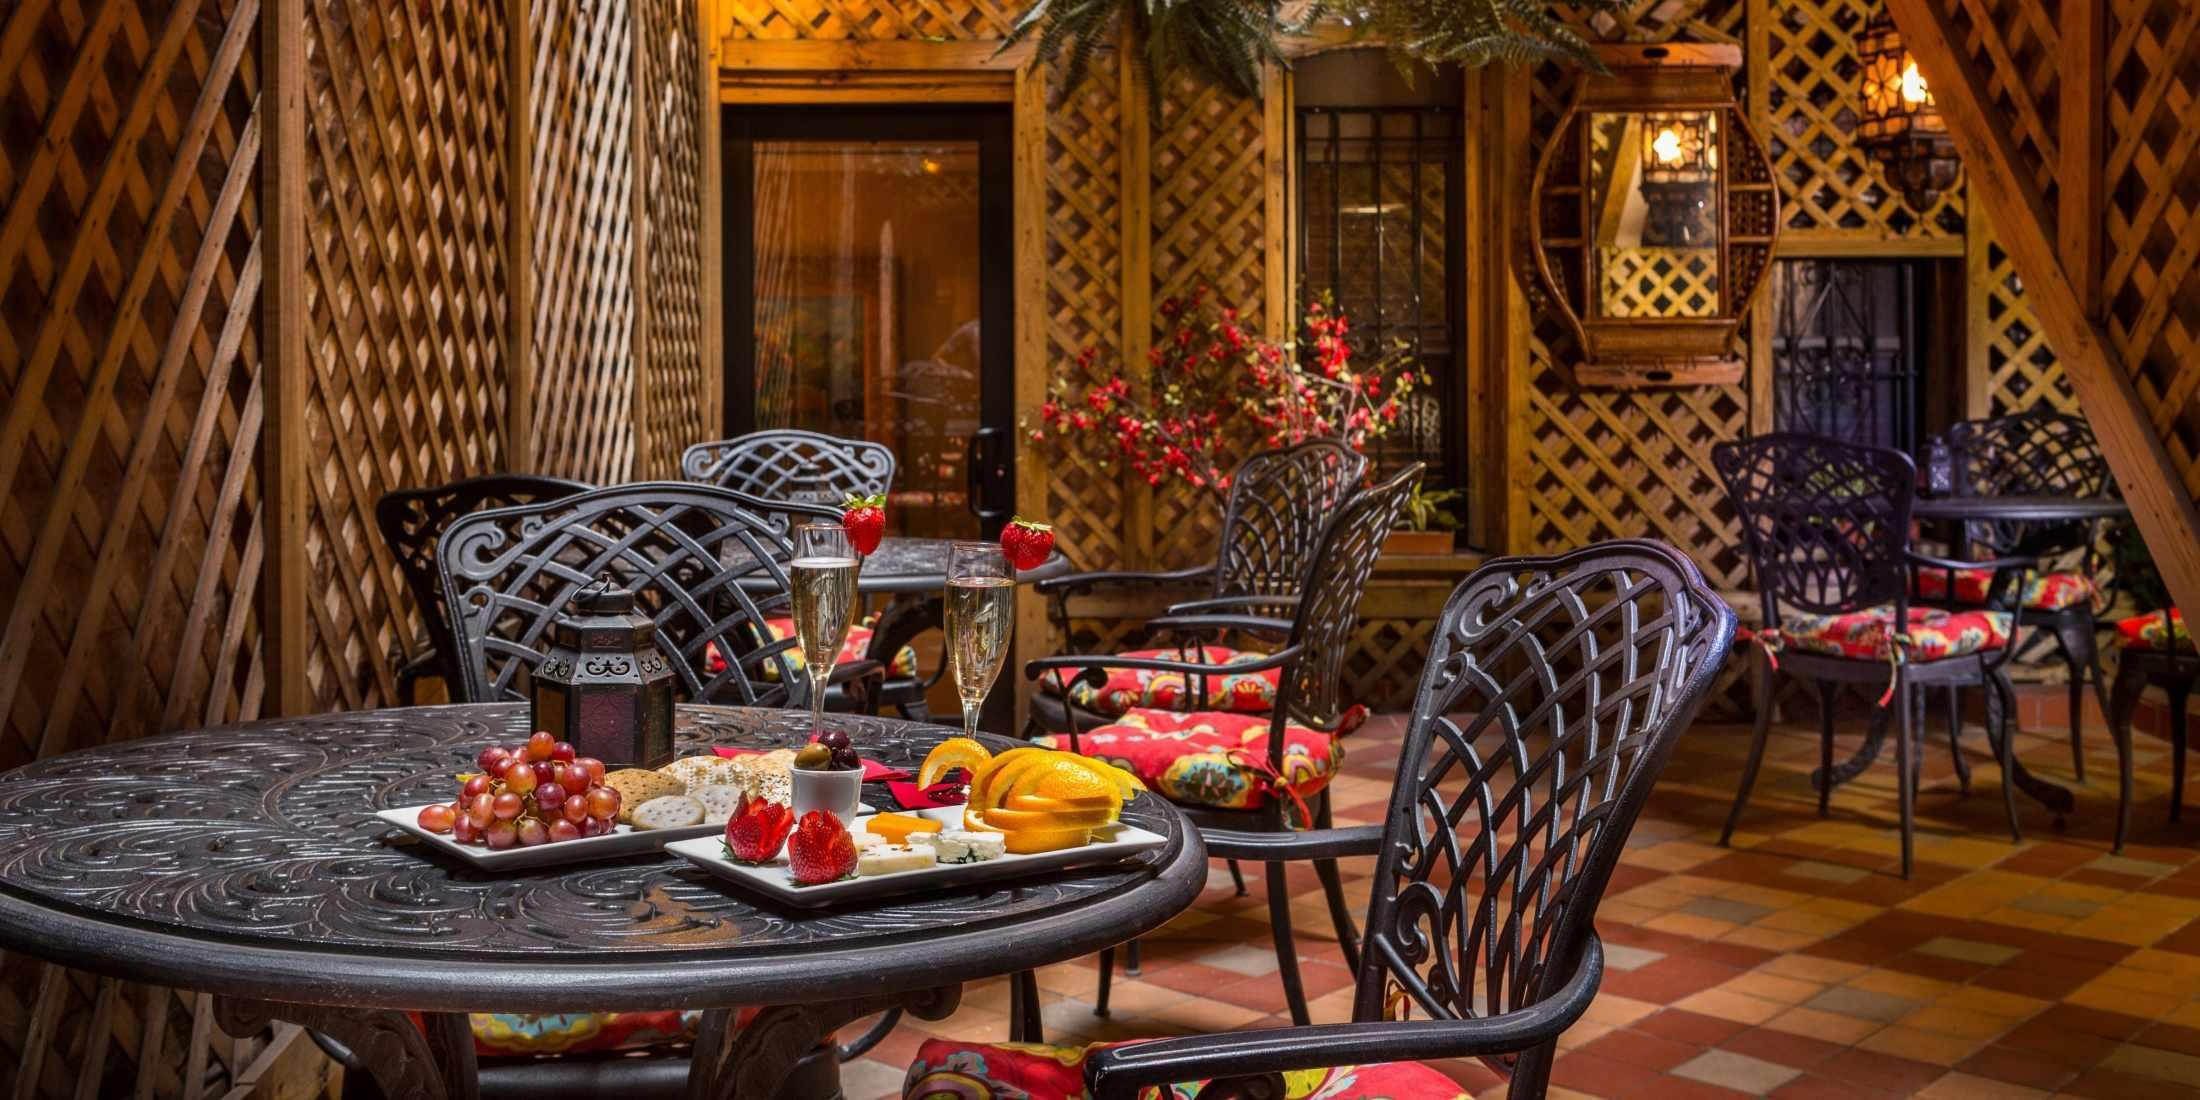 When the weather is warm, guests can enjoy wine and cheese in our Blue Parrot Courtyard.